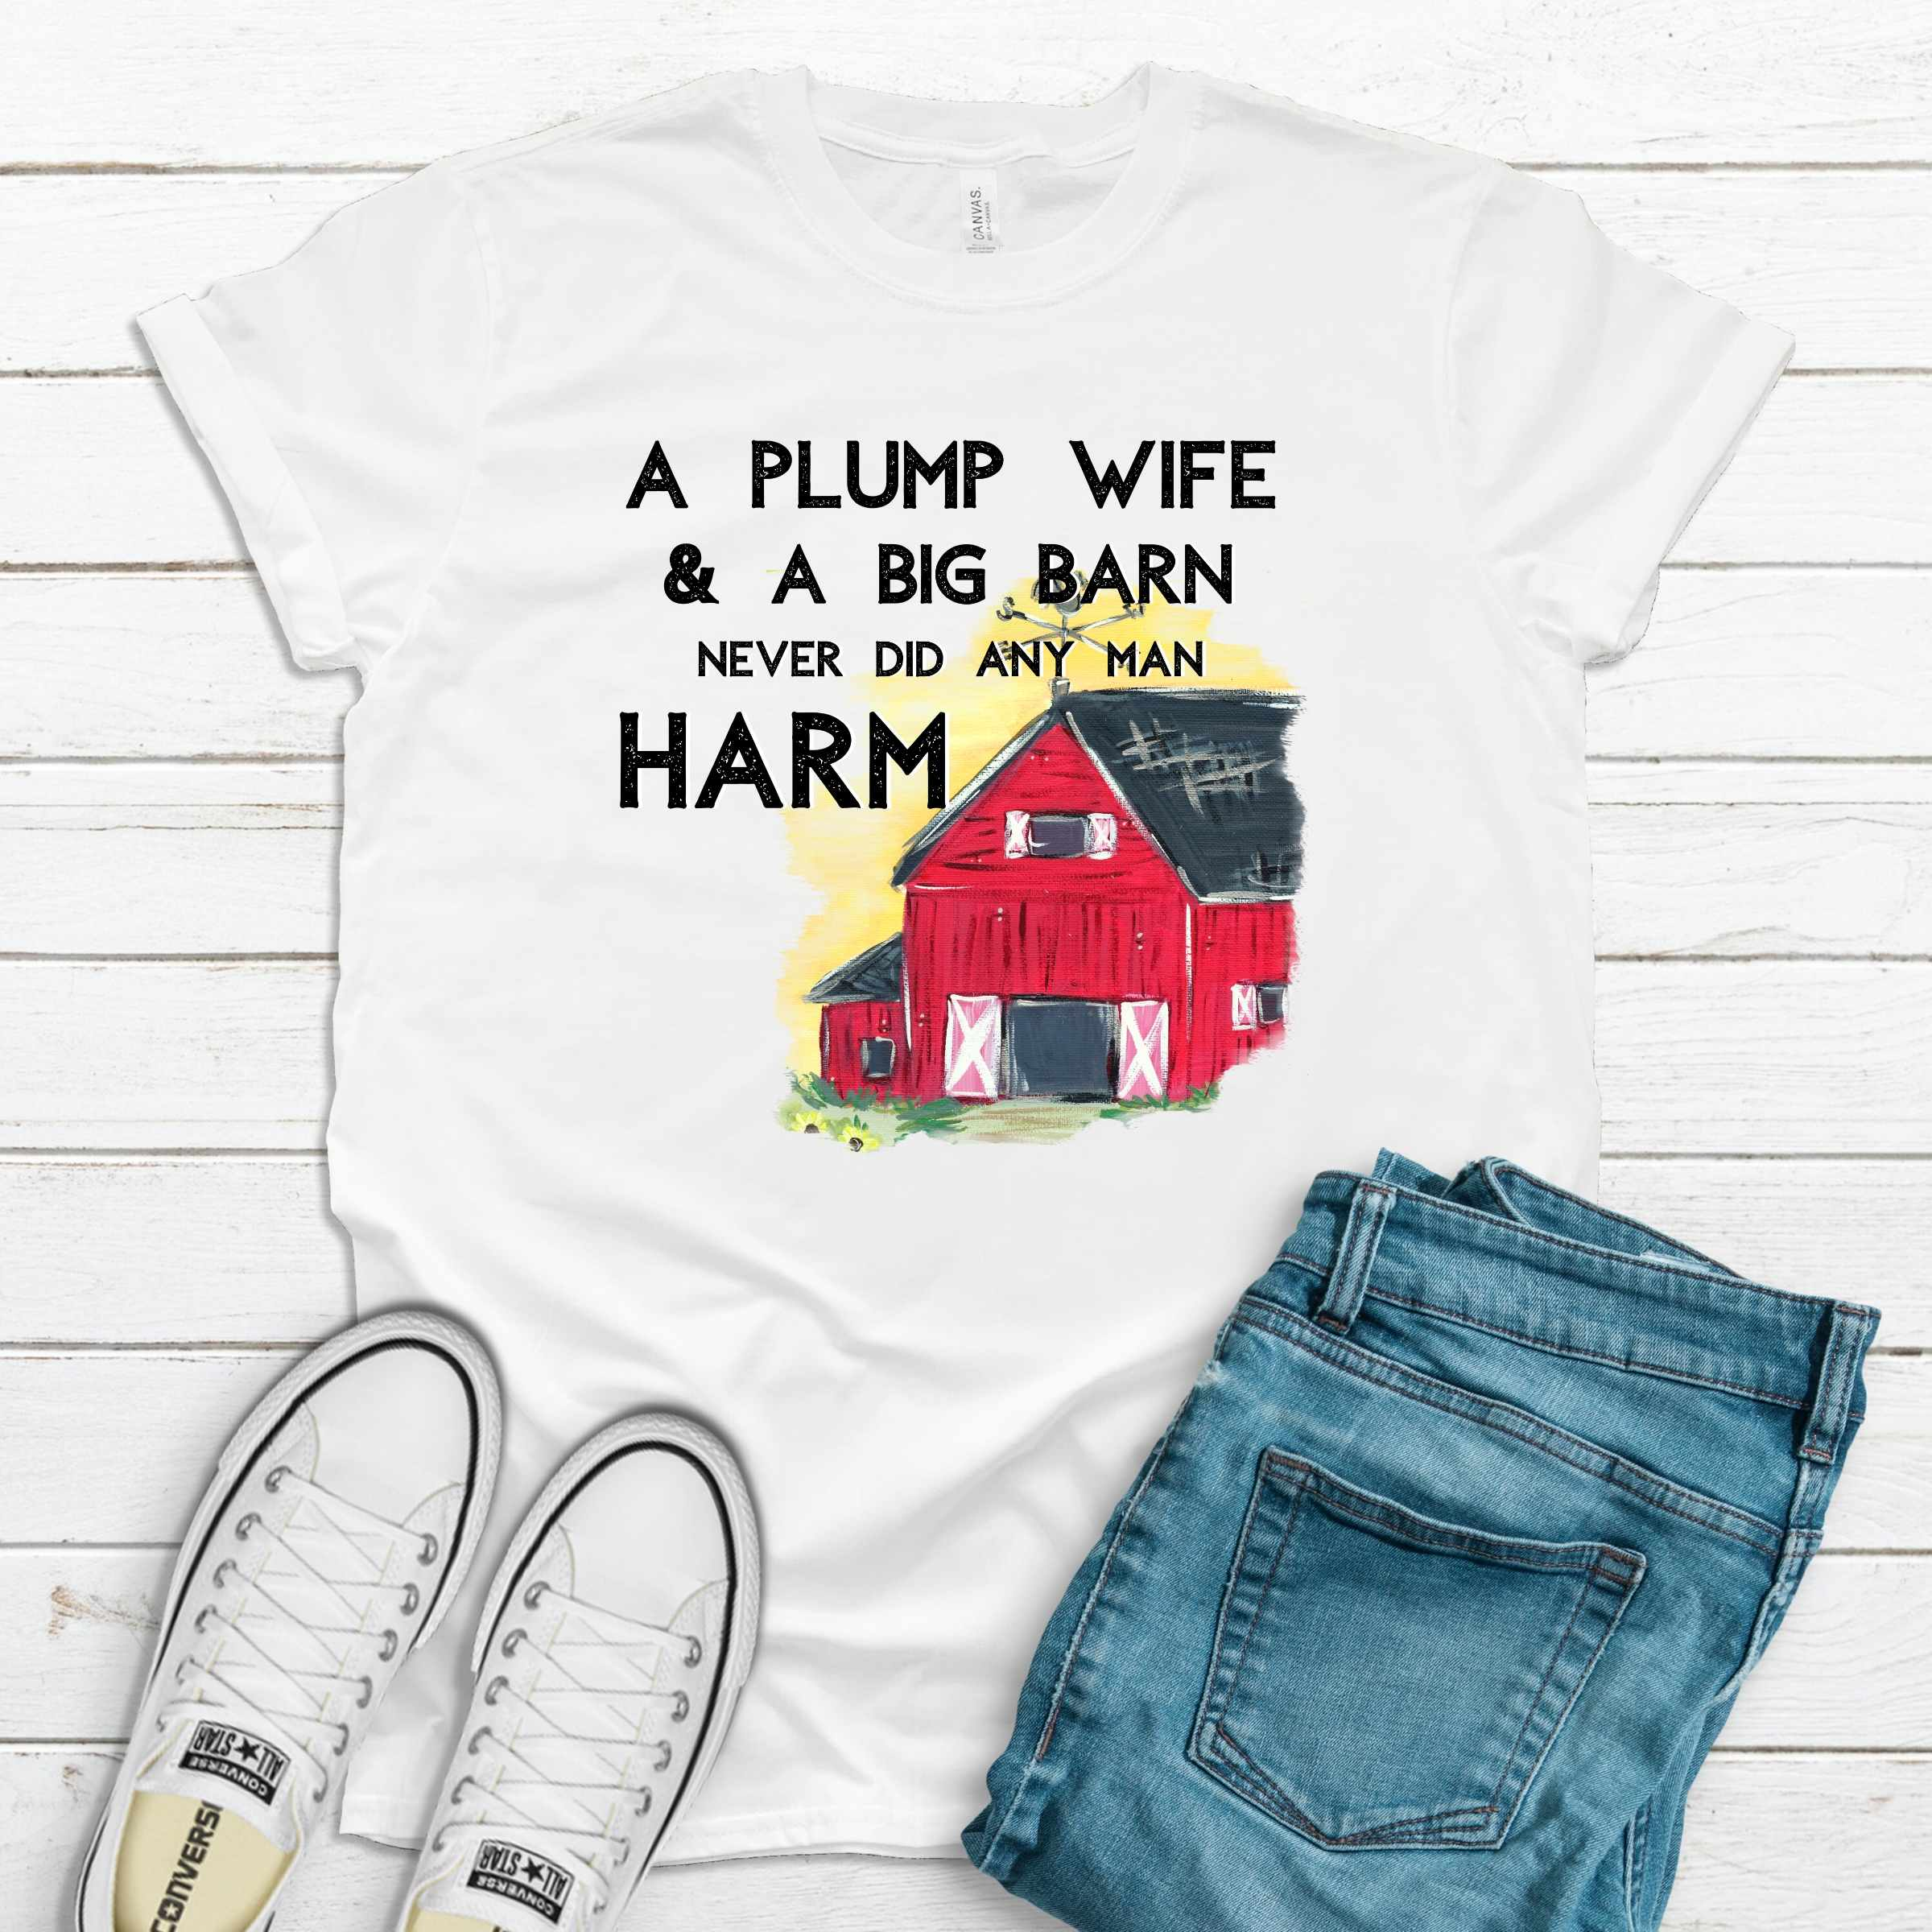 S -Plump Wife White Shirt-Shop-Wholesale-Womens-Boutique-Custom-Graphic-Tees-Branding-Gifts